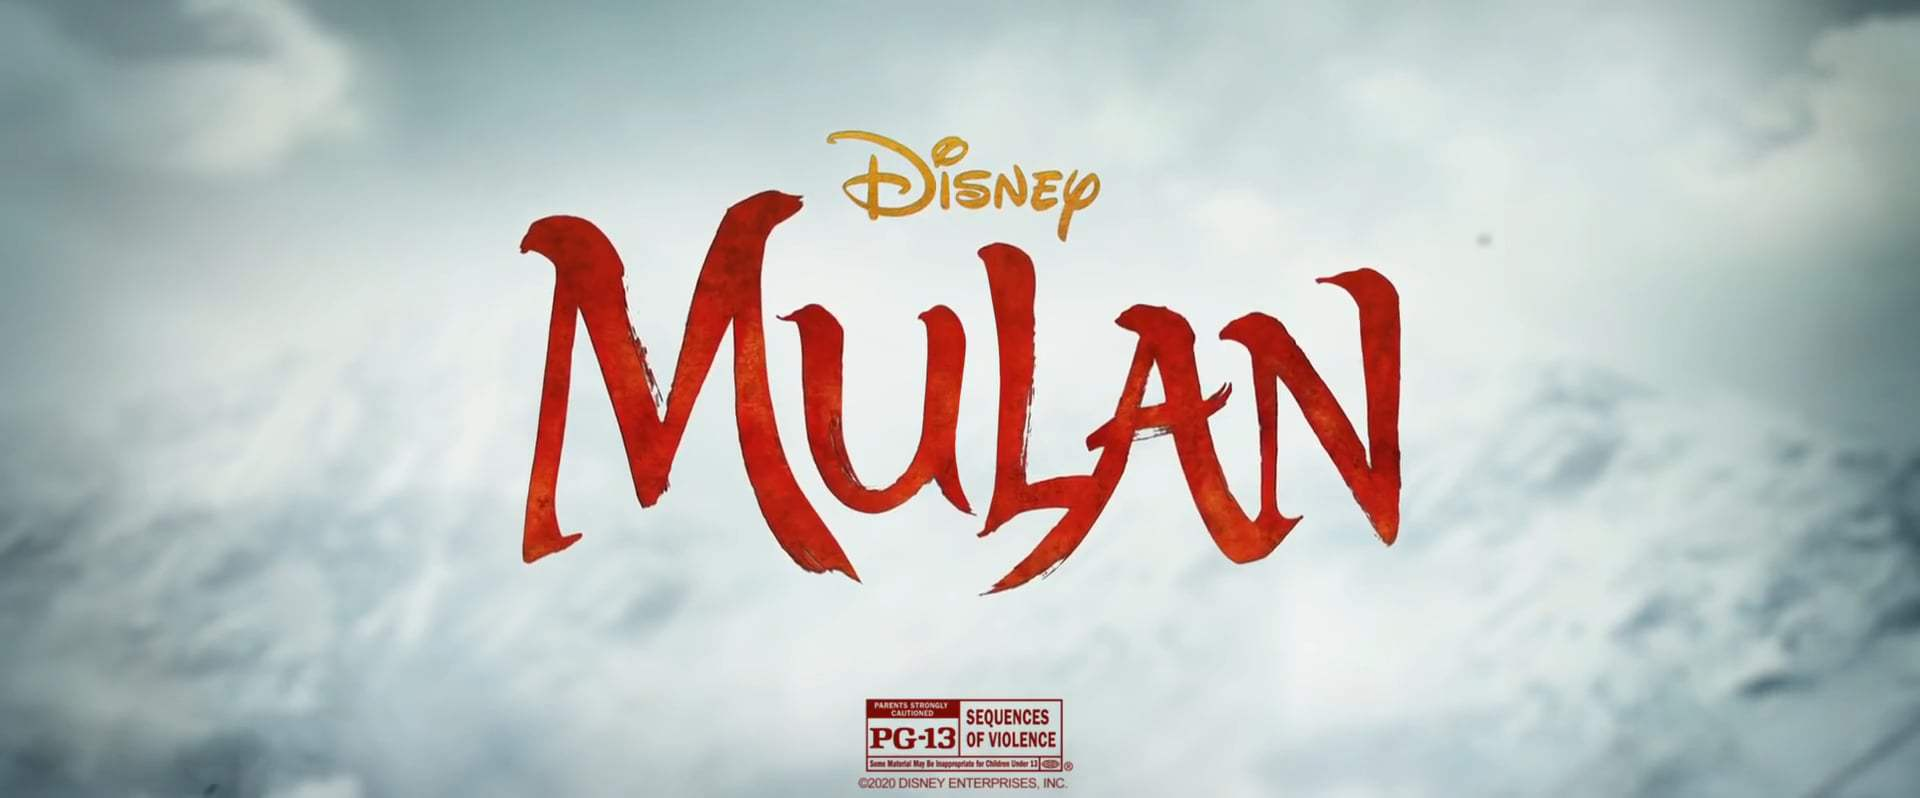 Mulan TV Spot - Never Give Up (2020) Screen Capture #4